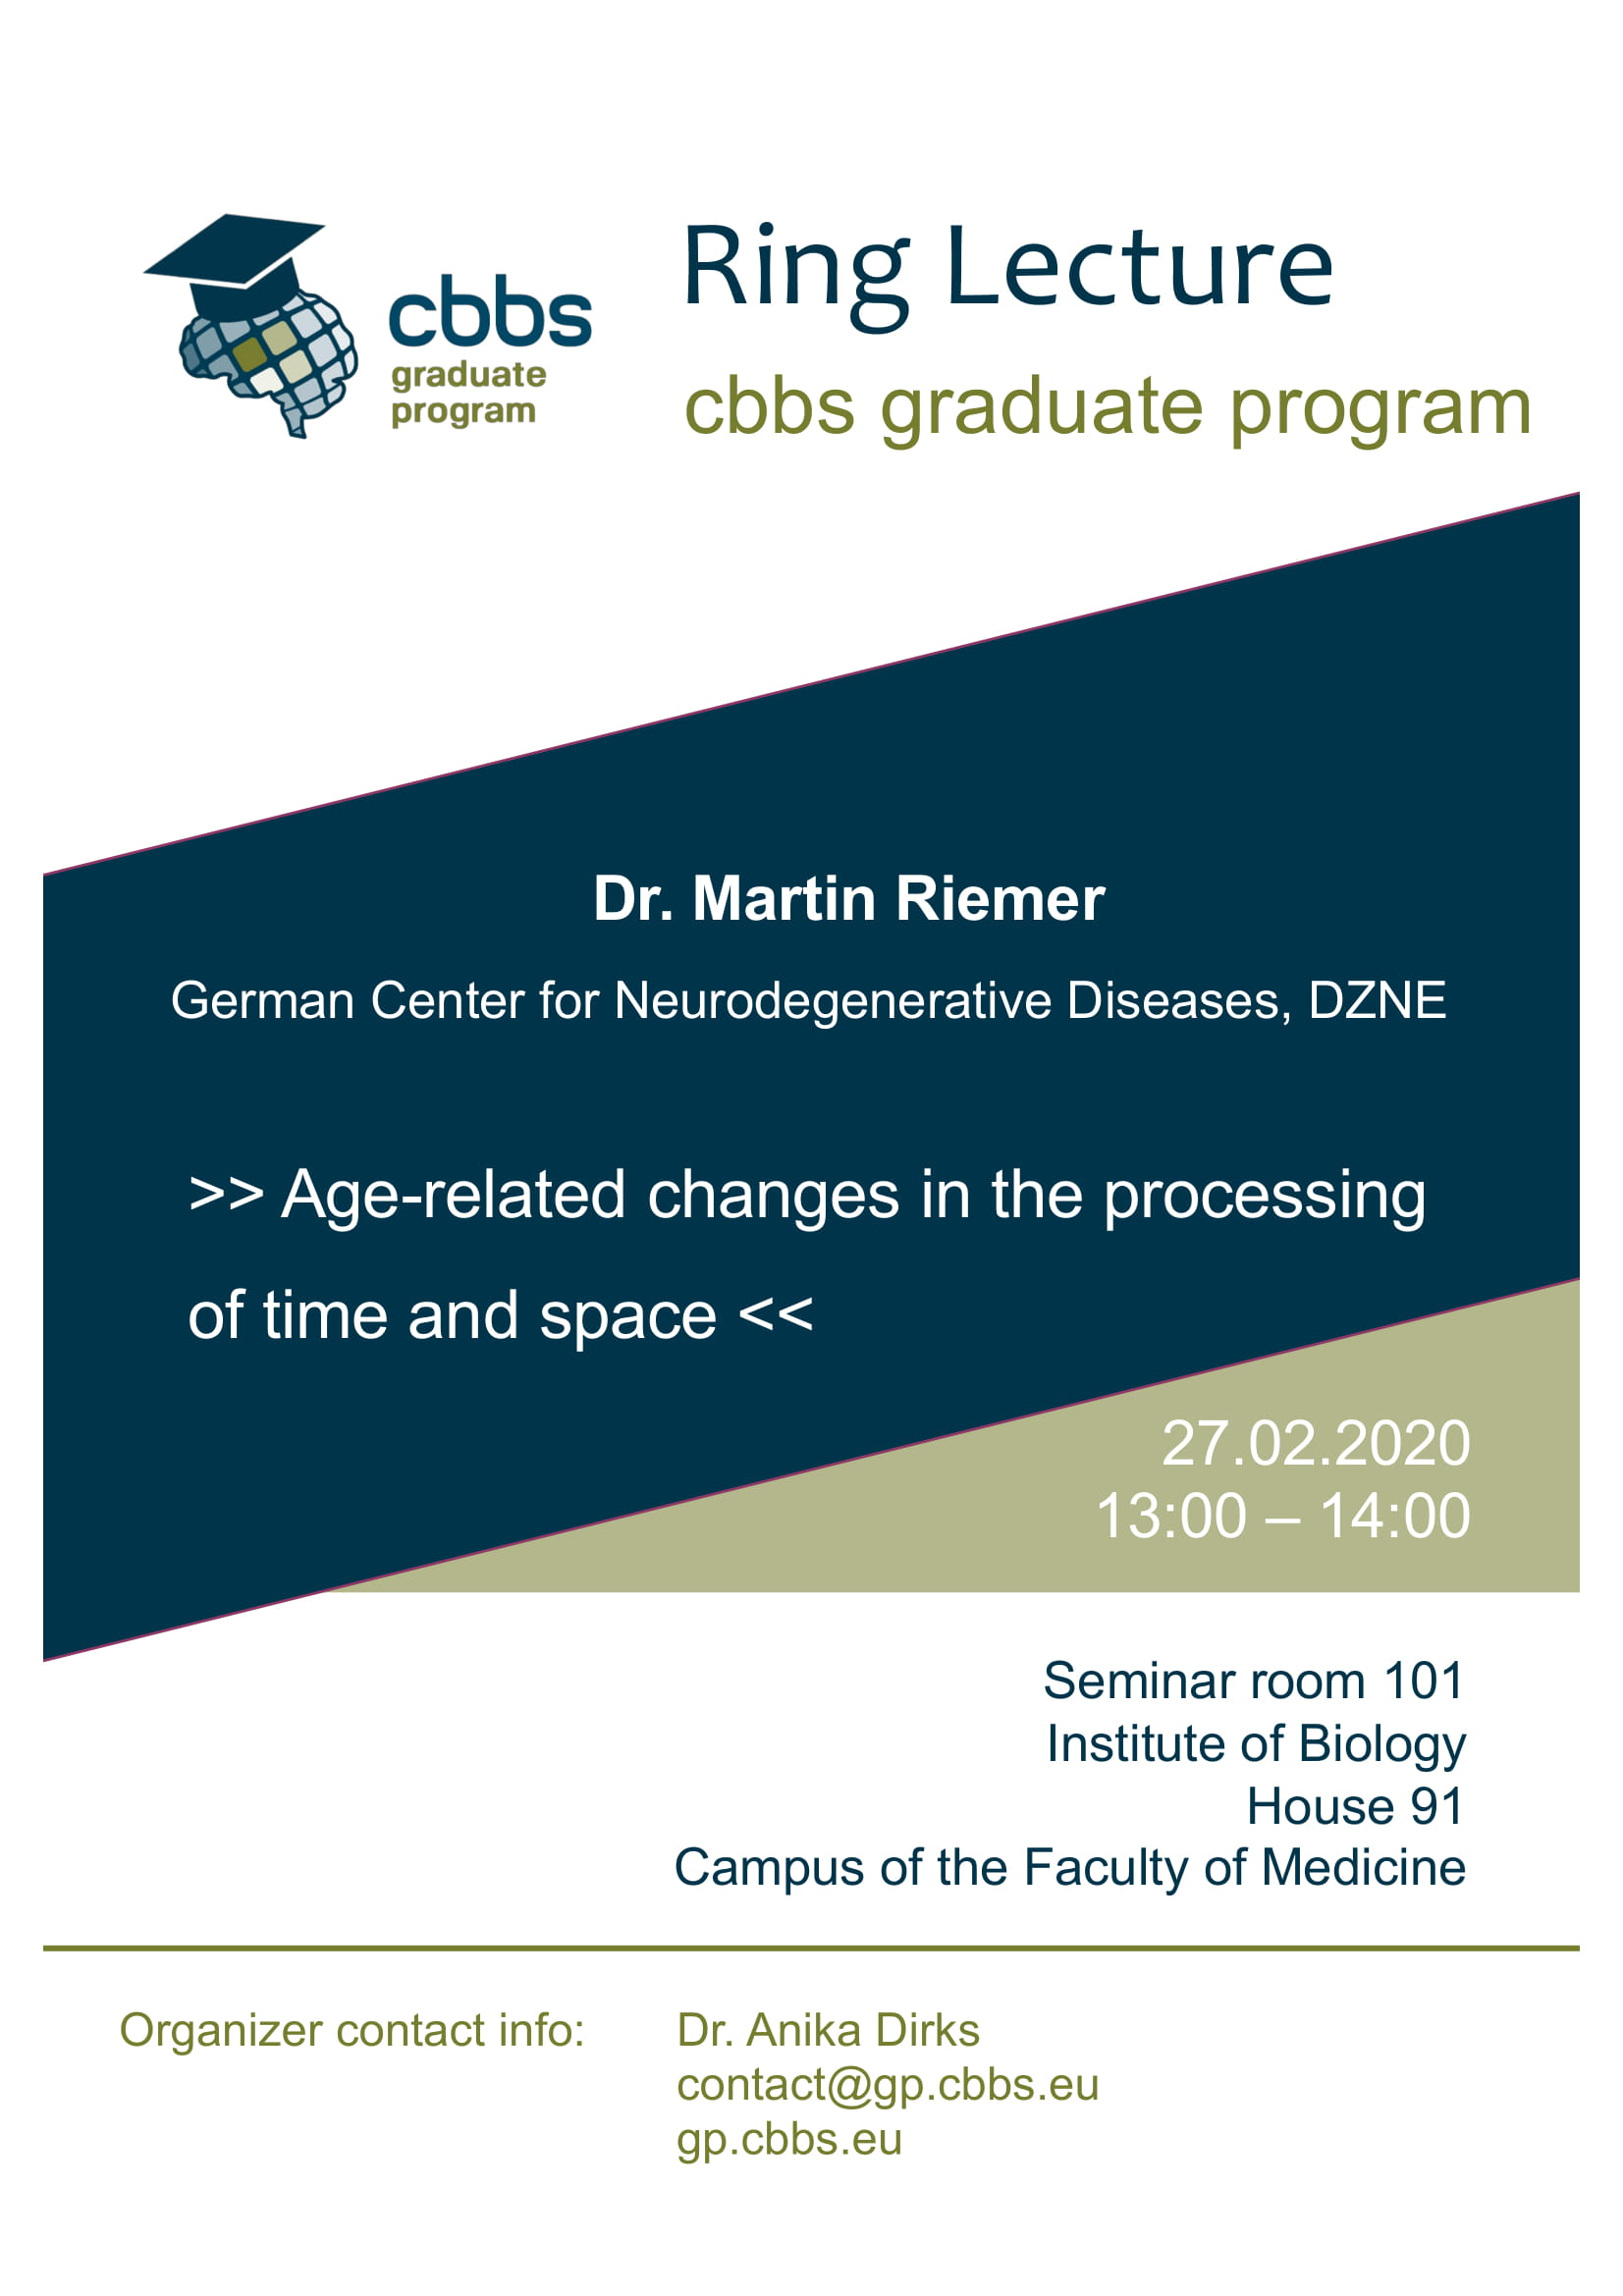 CBBS GP Ring Lecture: Age-related changes in the processing of time and space @ Institute of Biology, House 91, Seminar room 101